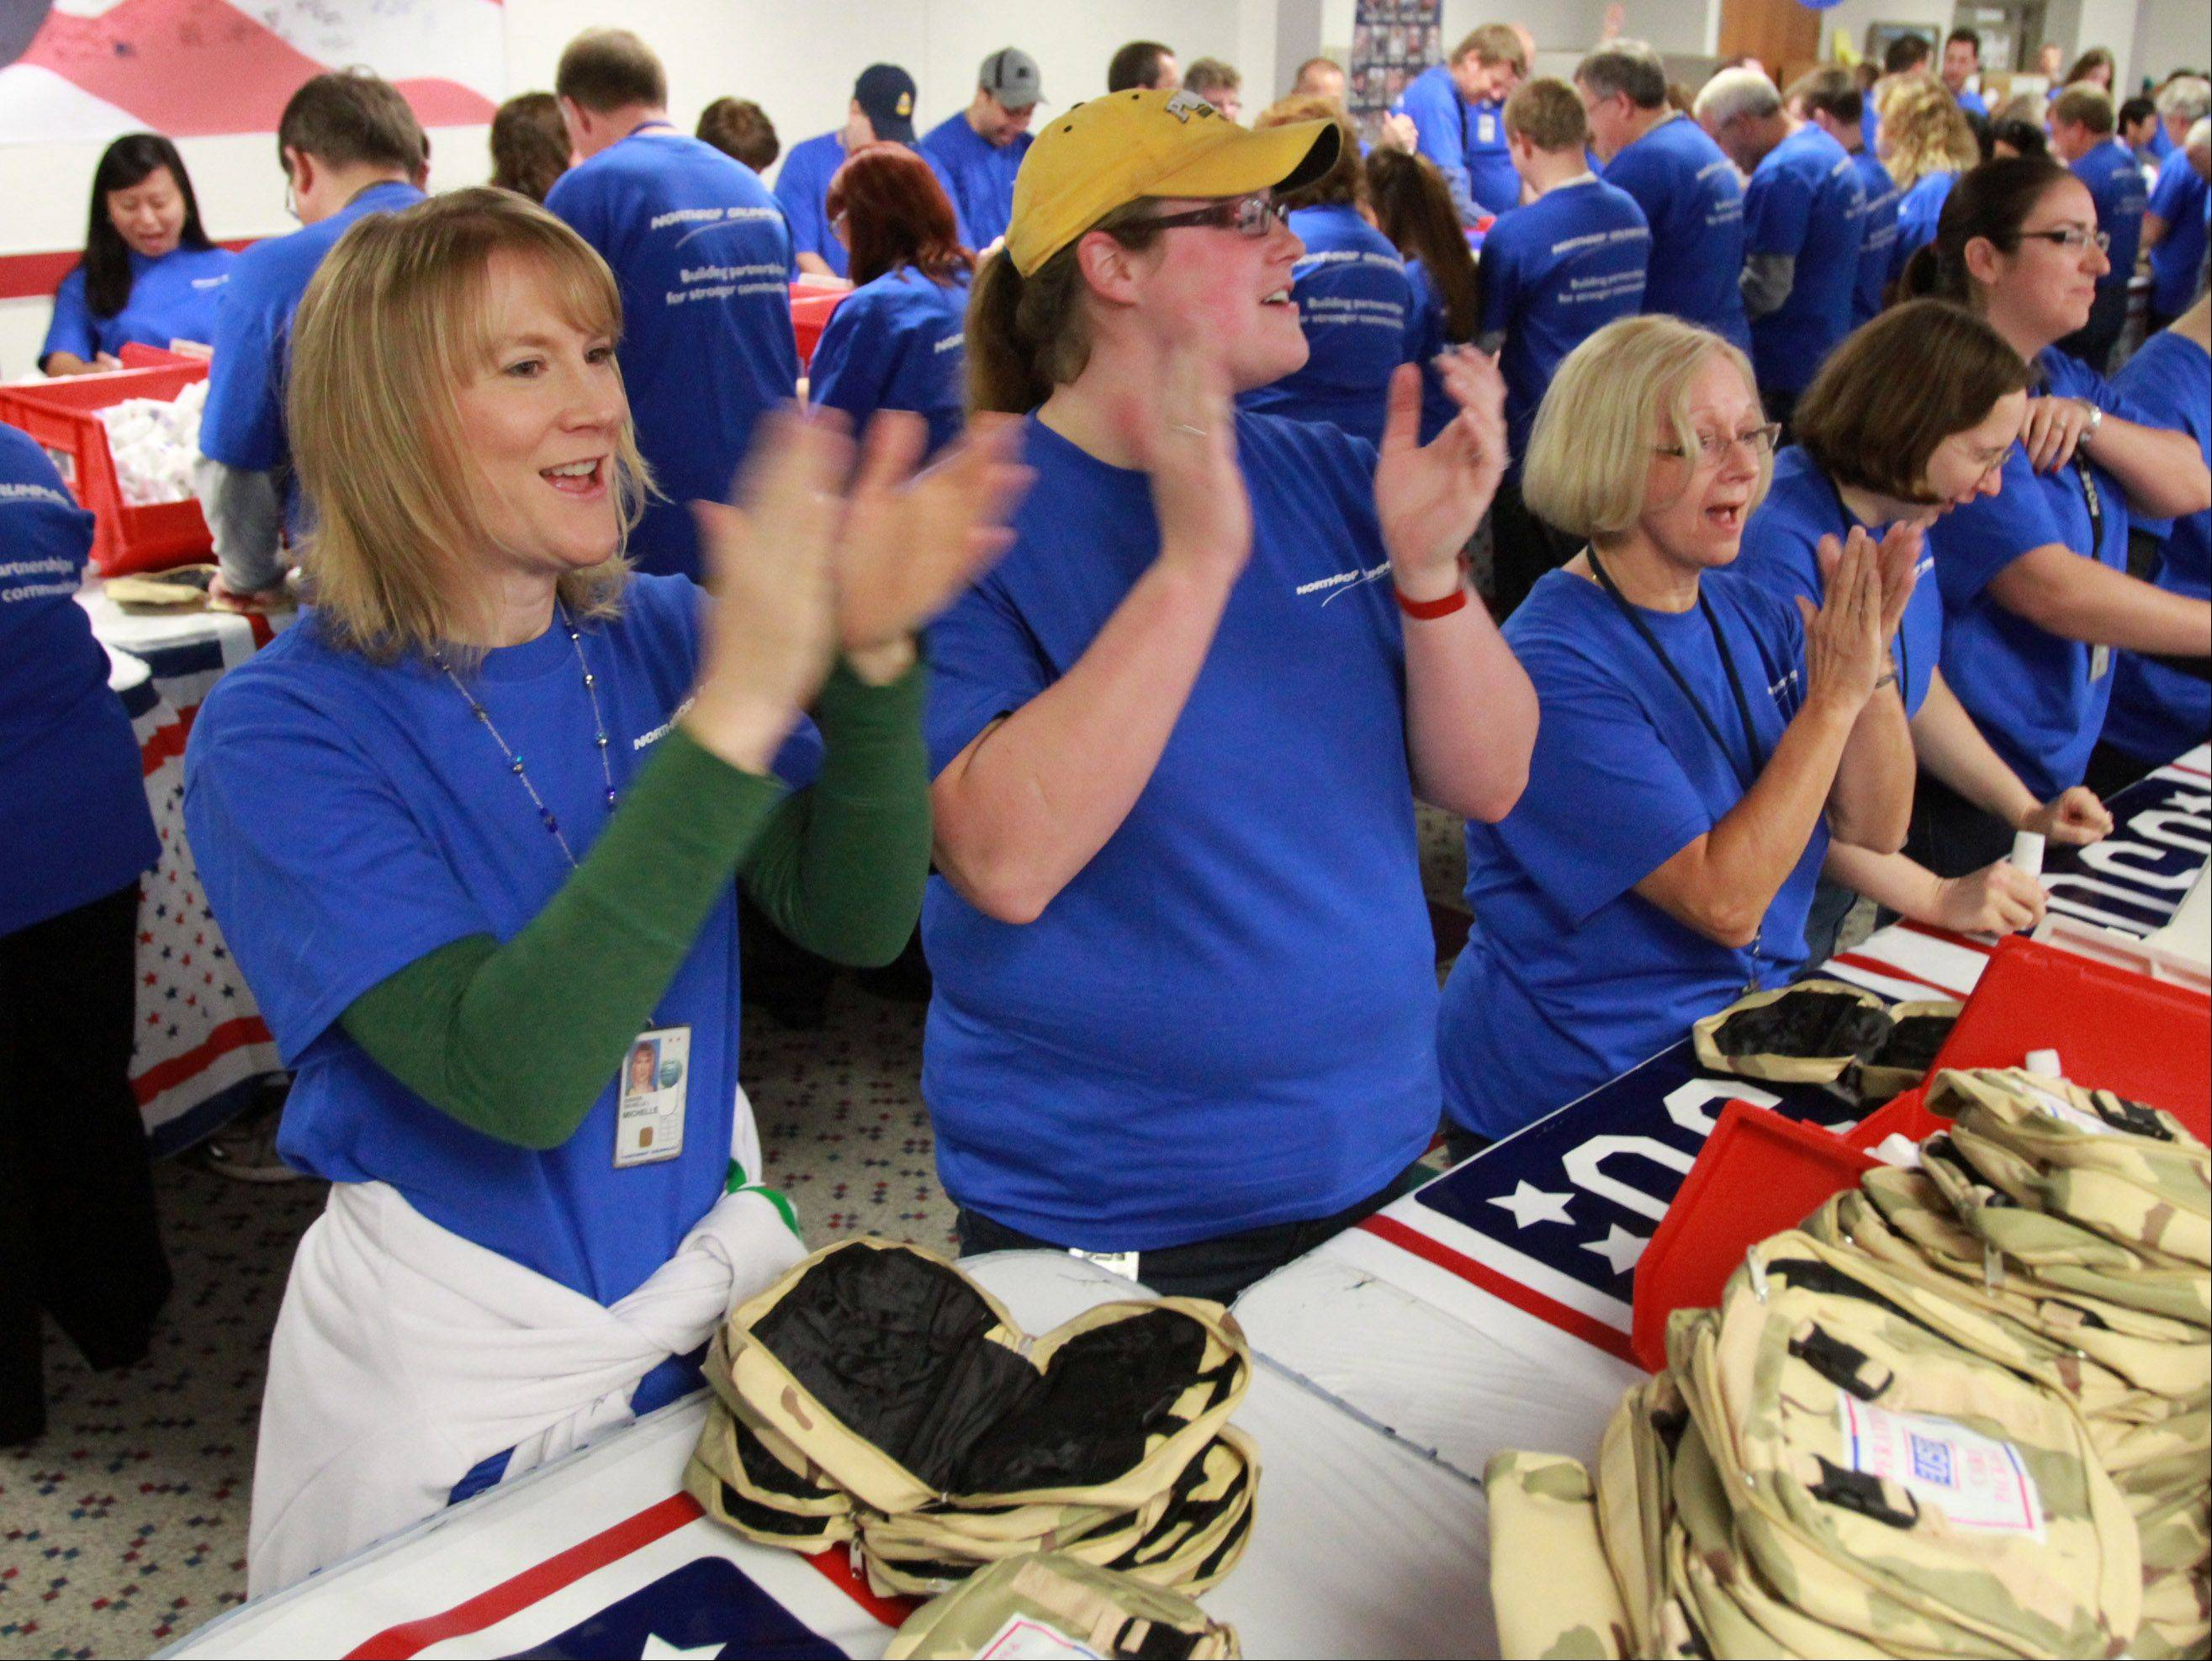 Northrop Grumman employees including Michelle Anders of Bartlett, far left, and Kari Parson of Plainfield, right, celebrate filling a large container with USO care packages.